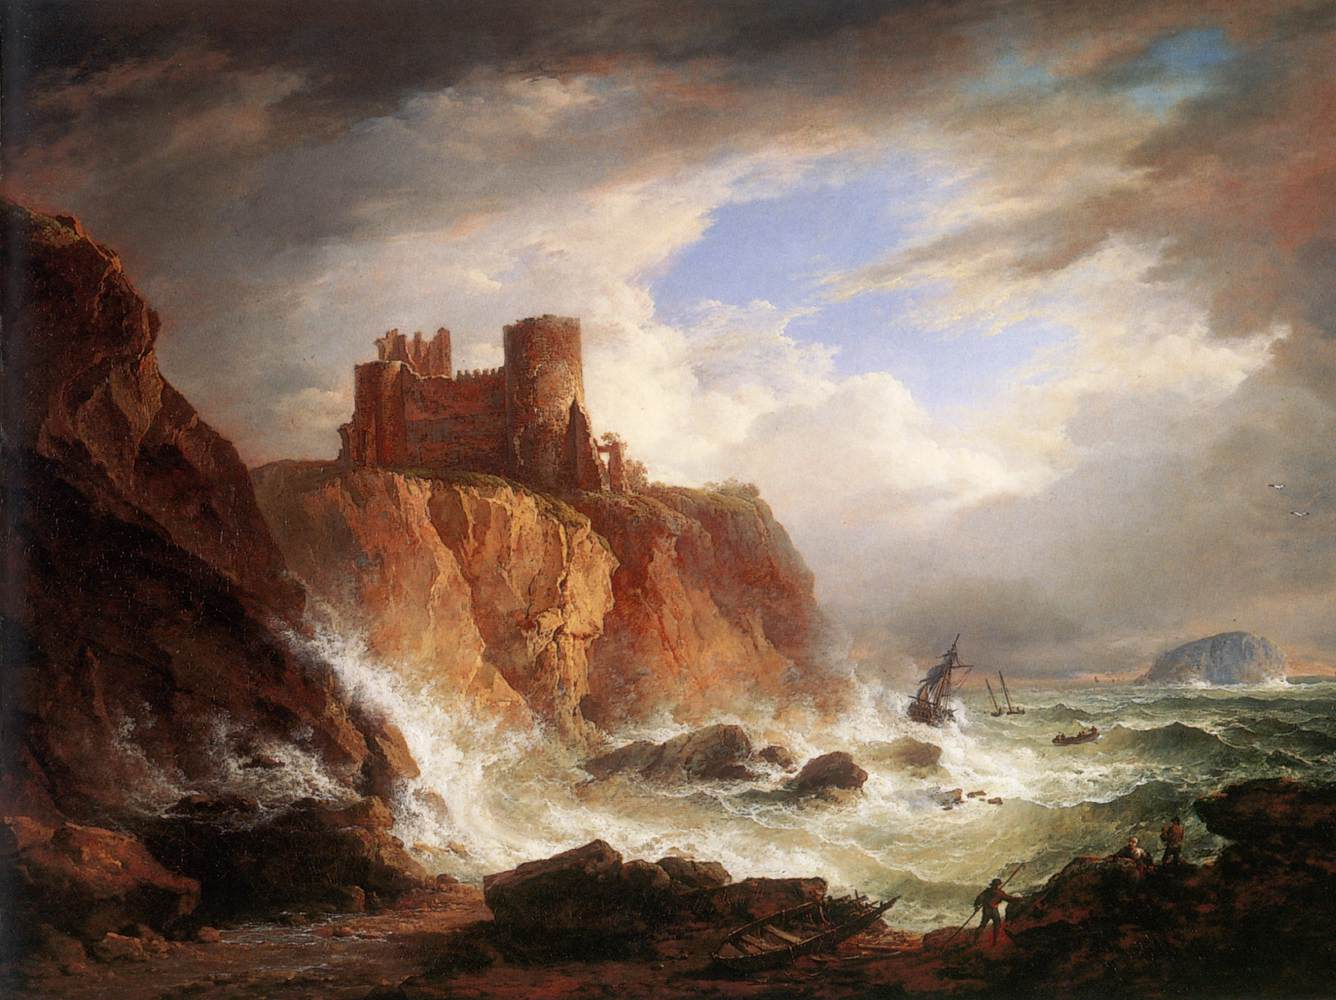 http://upload.wikimedia.org/wikipedia/commons/d/db/Alexander_Nasmyth_-_A_View_of_Tantallon_Castle_-_WGA16442.jpg